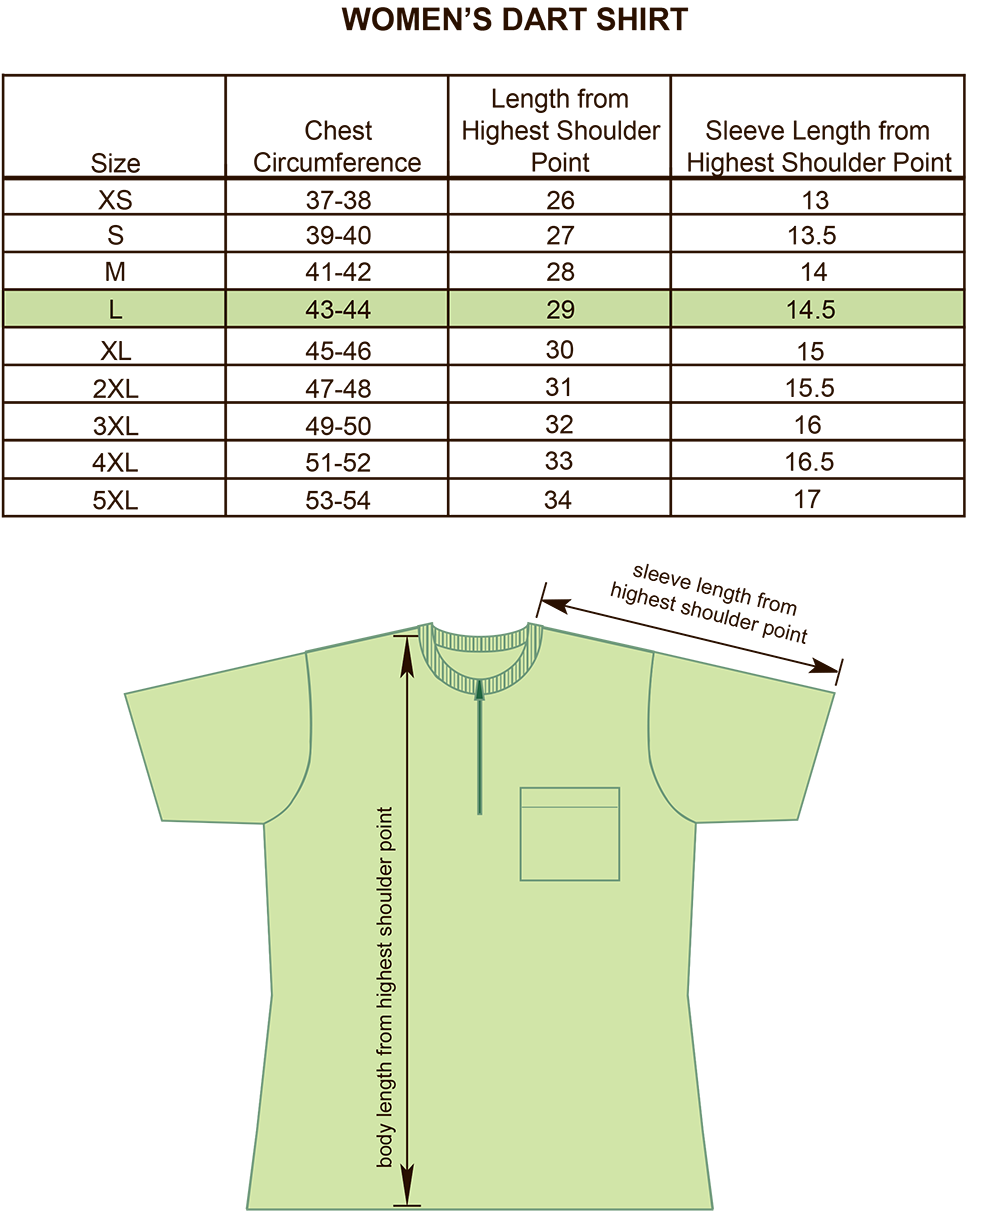 Womens Darts, Bowling and Billiards Shirt Crew Neck Size Chart Image